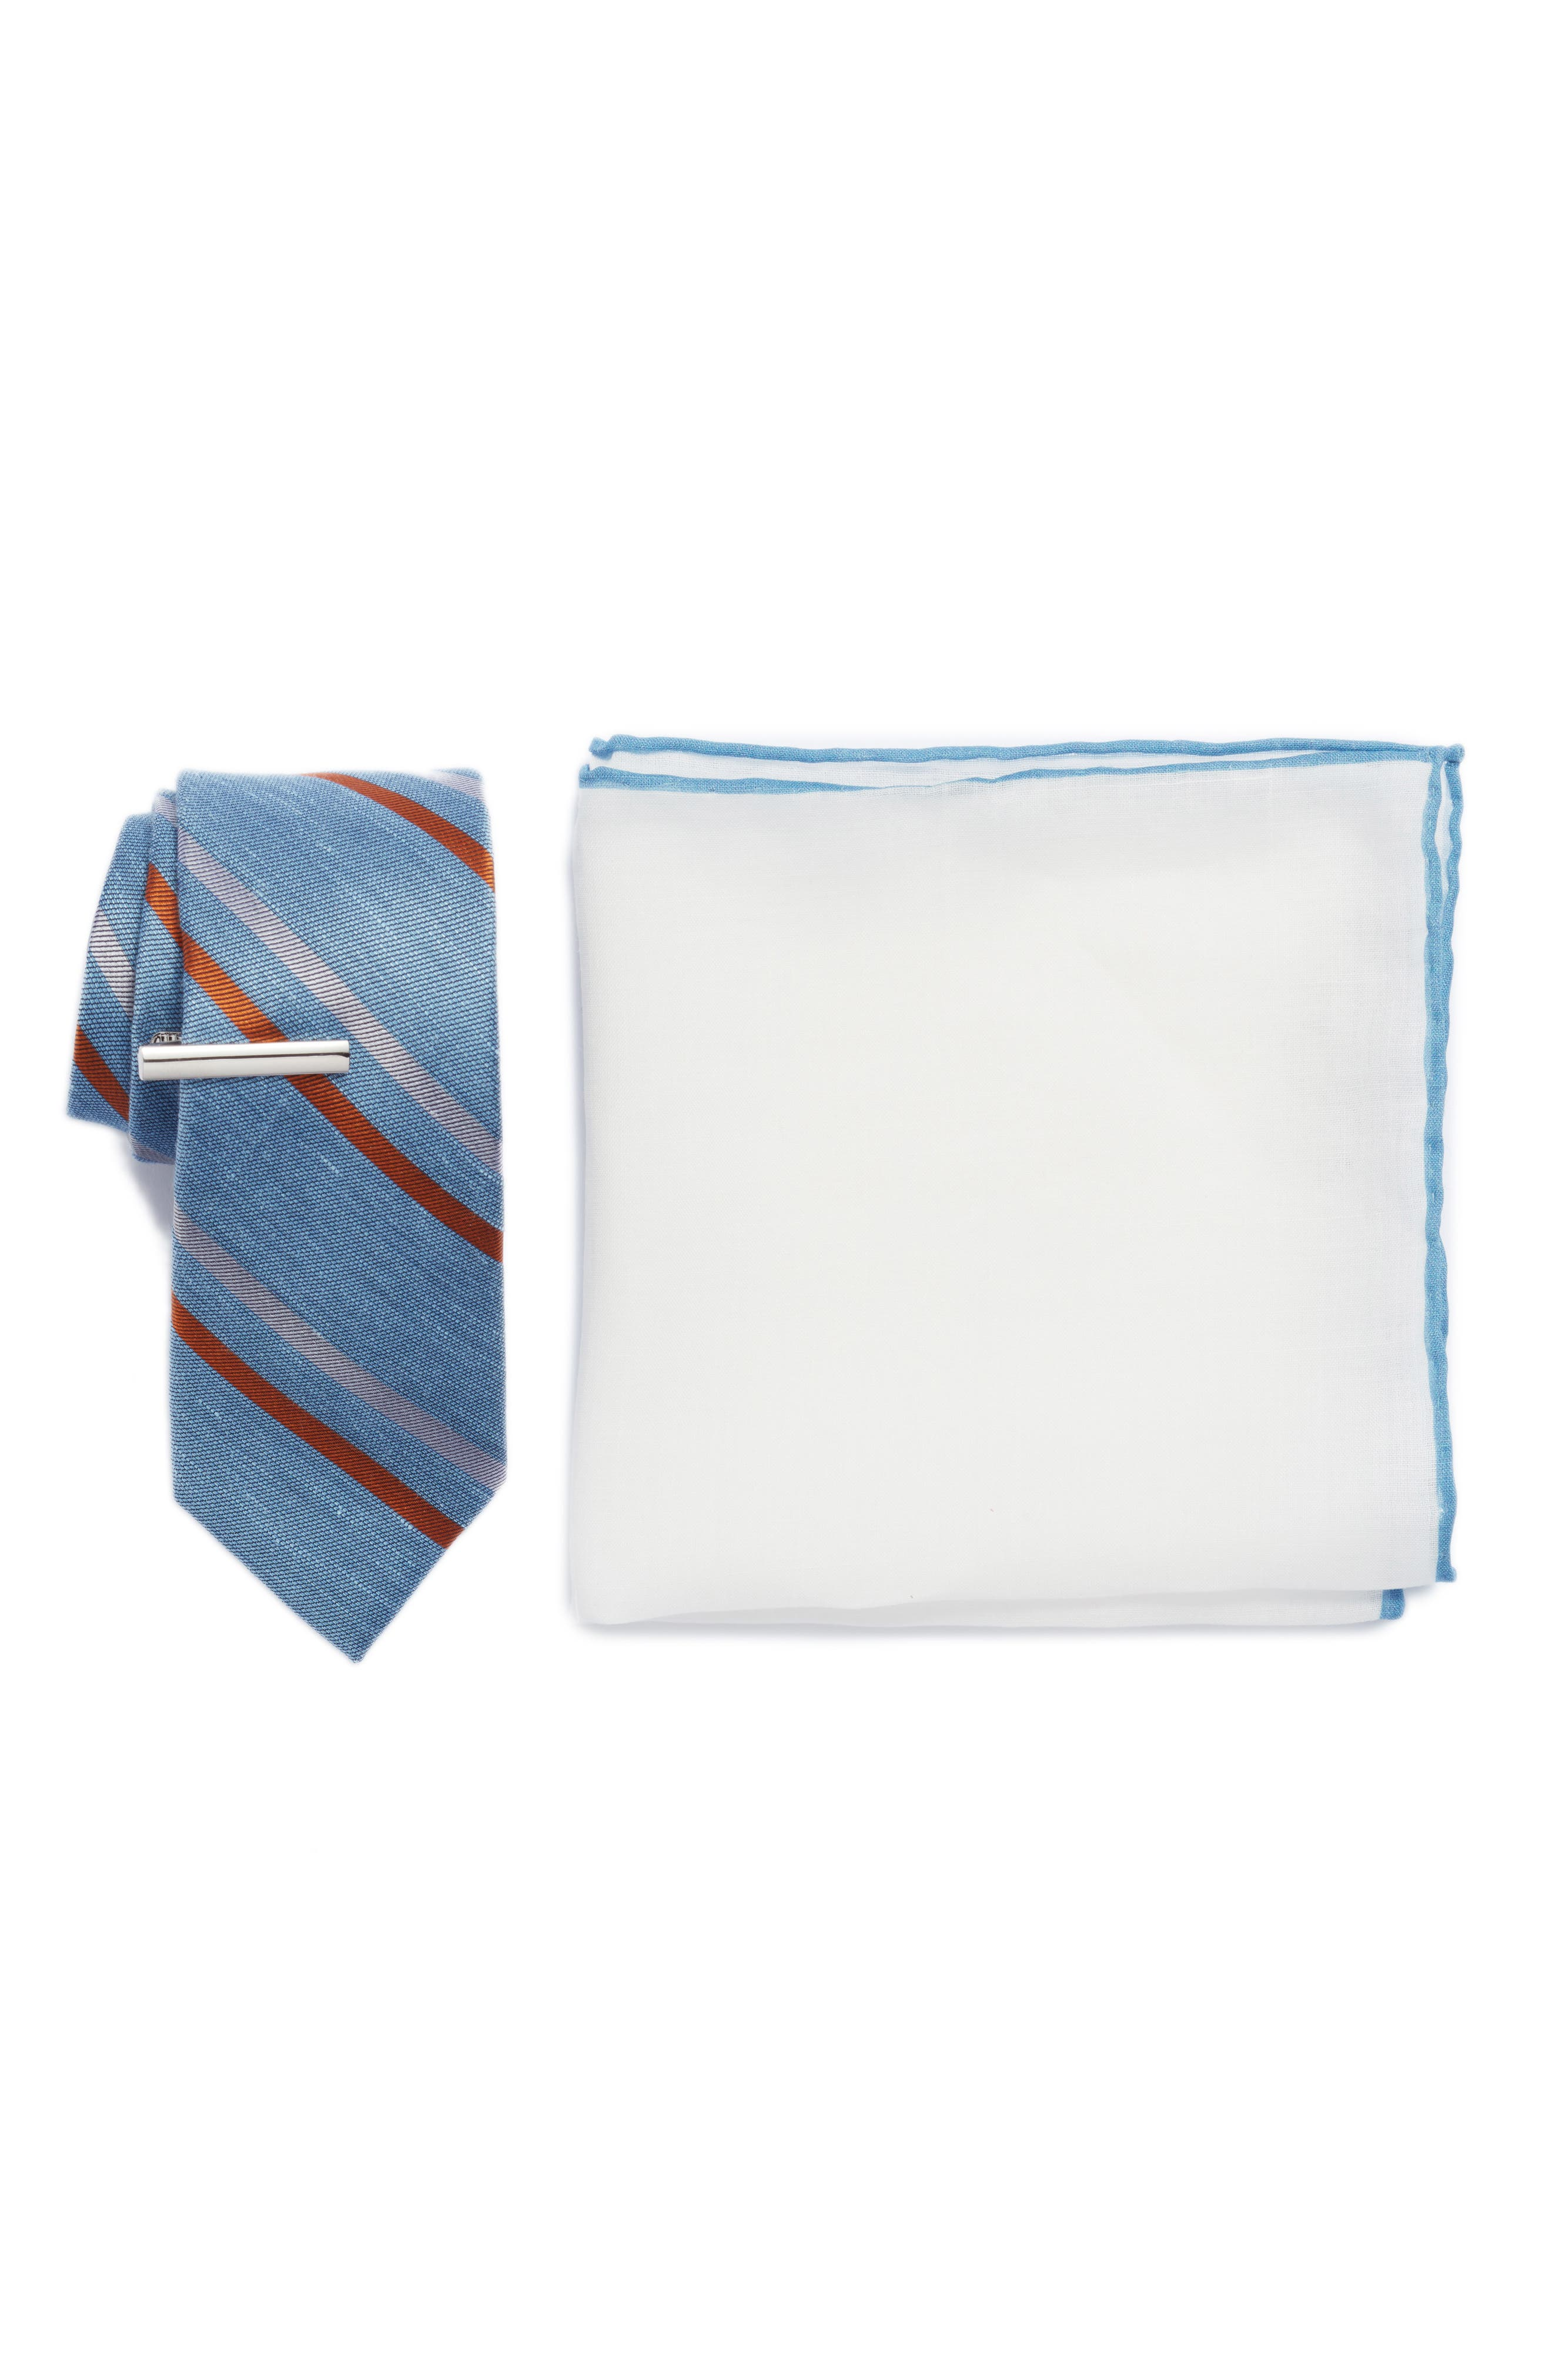 Pep Stripe 3-Piece Skinny Tie Style Box,                             Main thumbnail 1, color,                             Light Blue